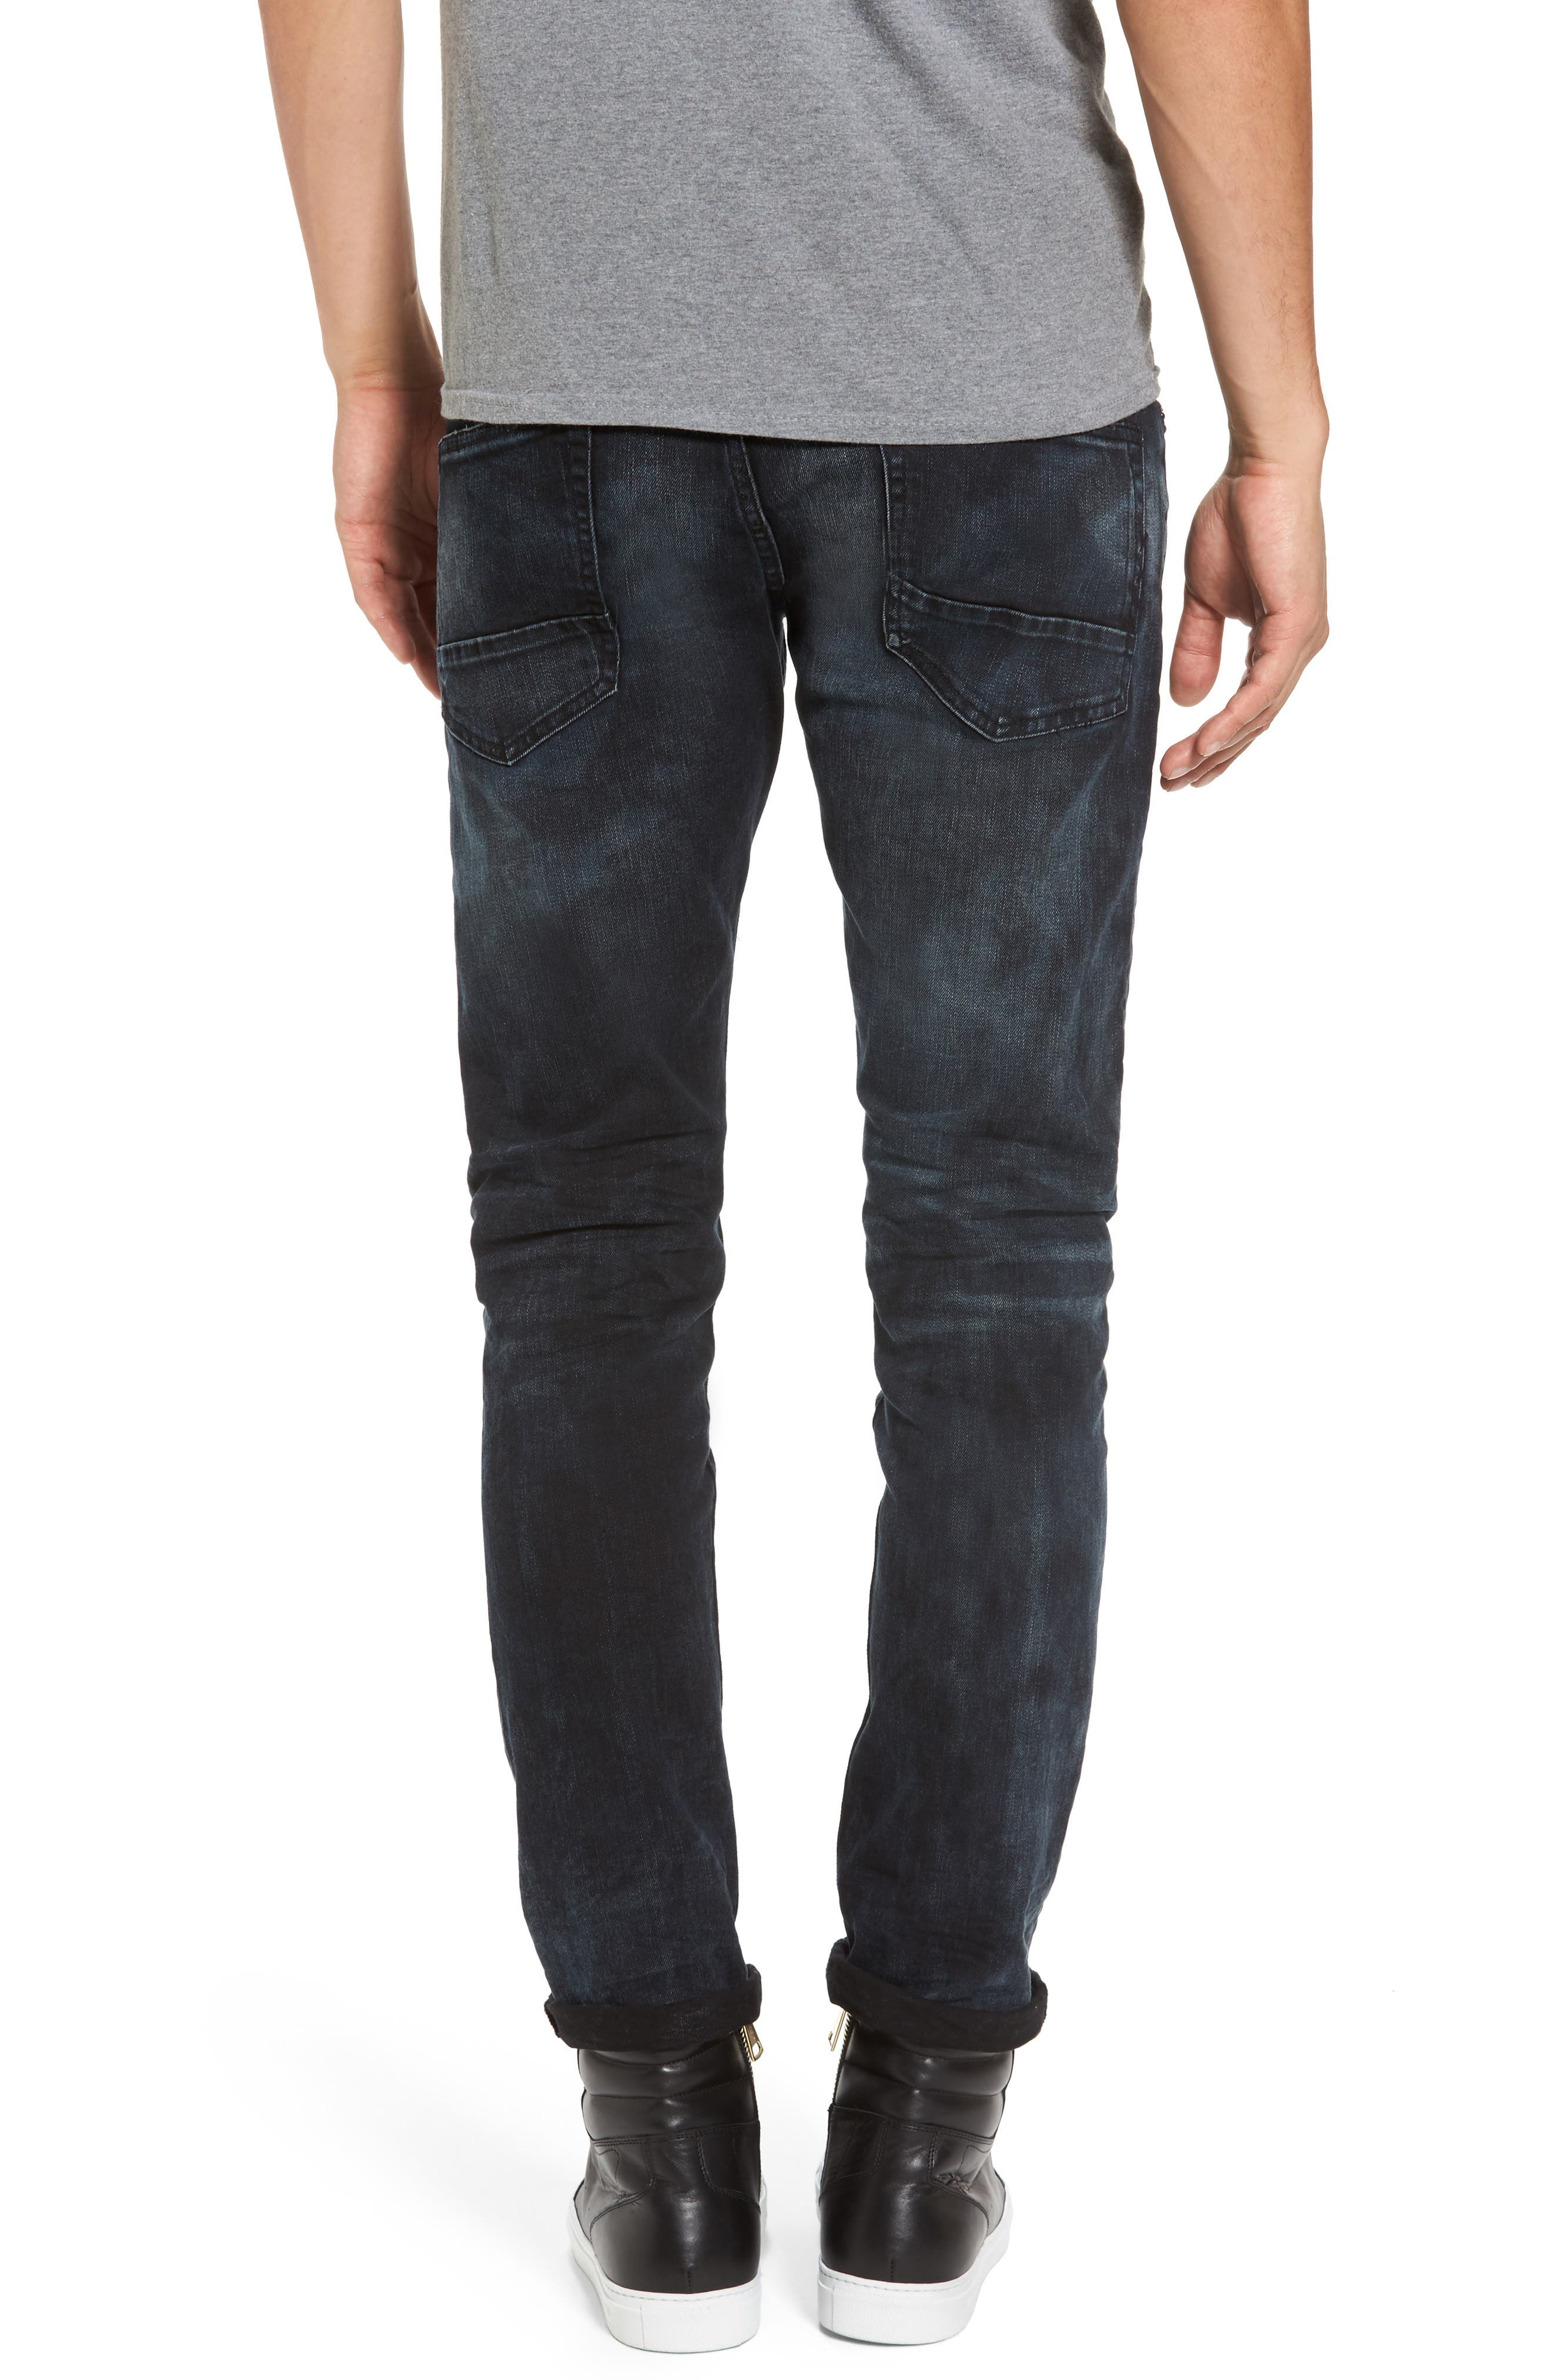 Tye Slim Fit Jeans,                             Alternate thumbnail 2, color,                             Sander